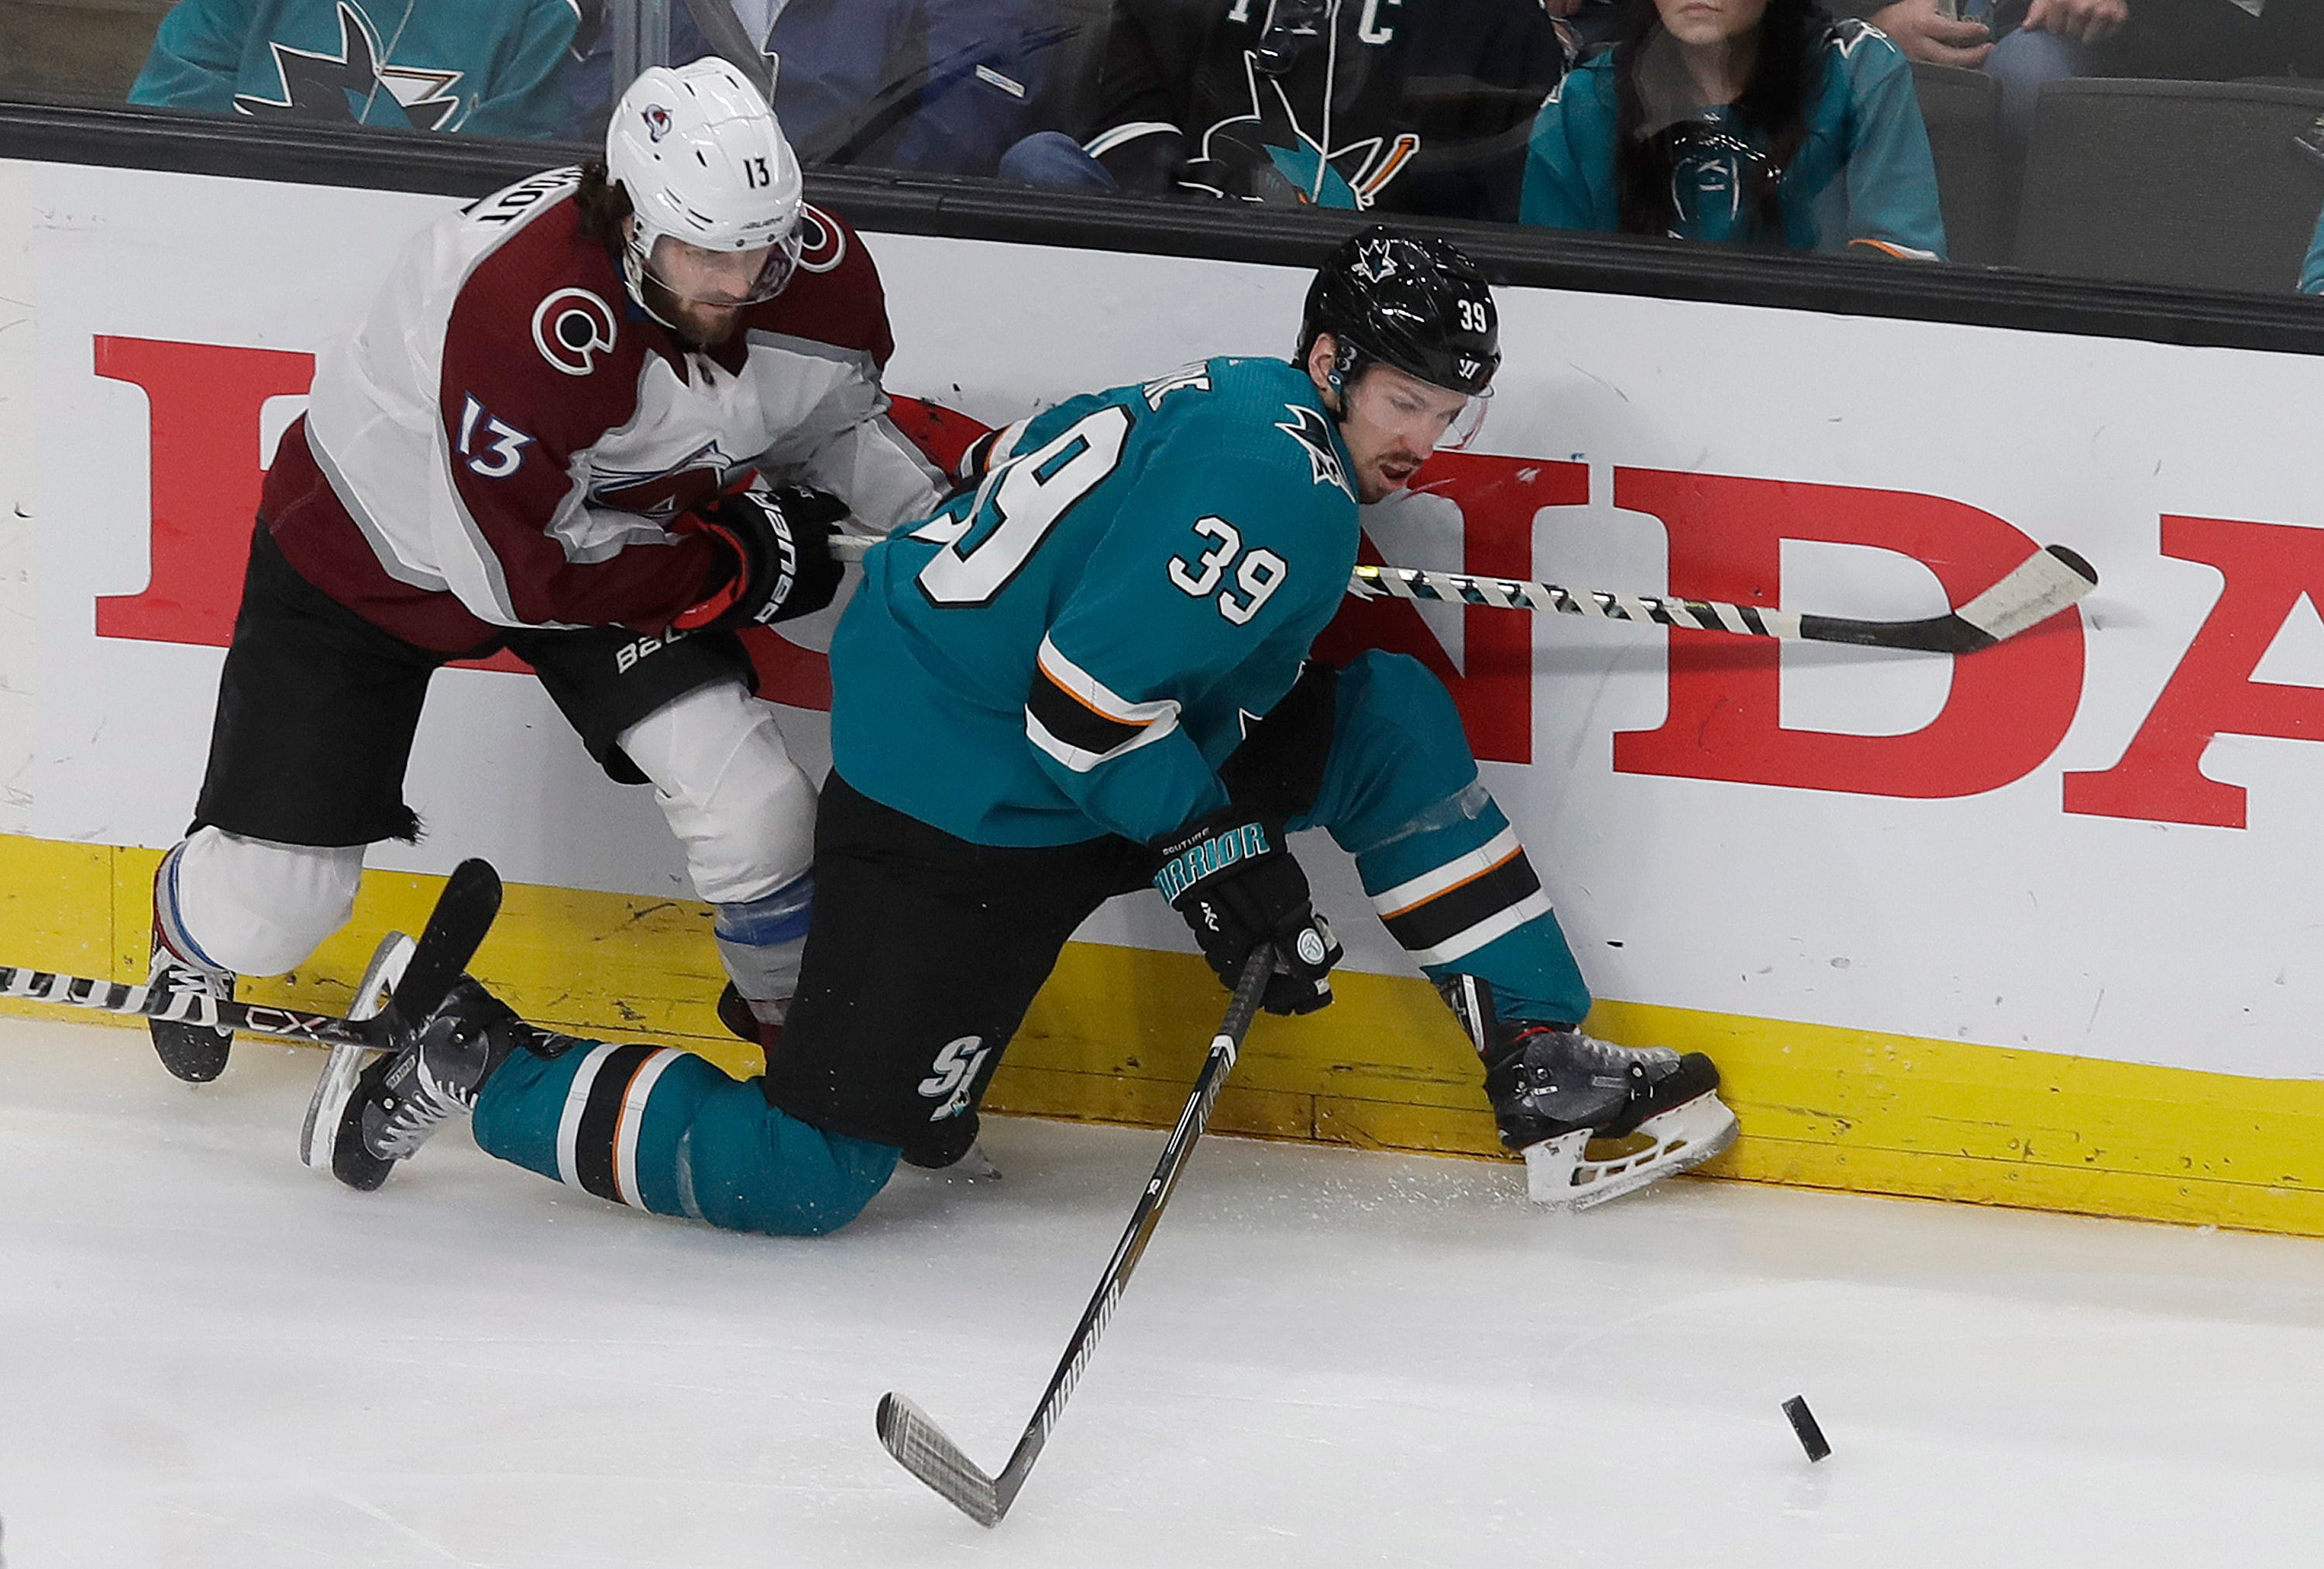 Sharks open camp with new captain after Pavelski's departure